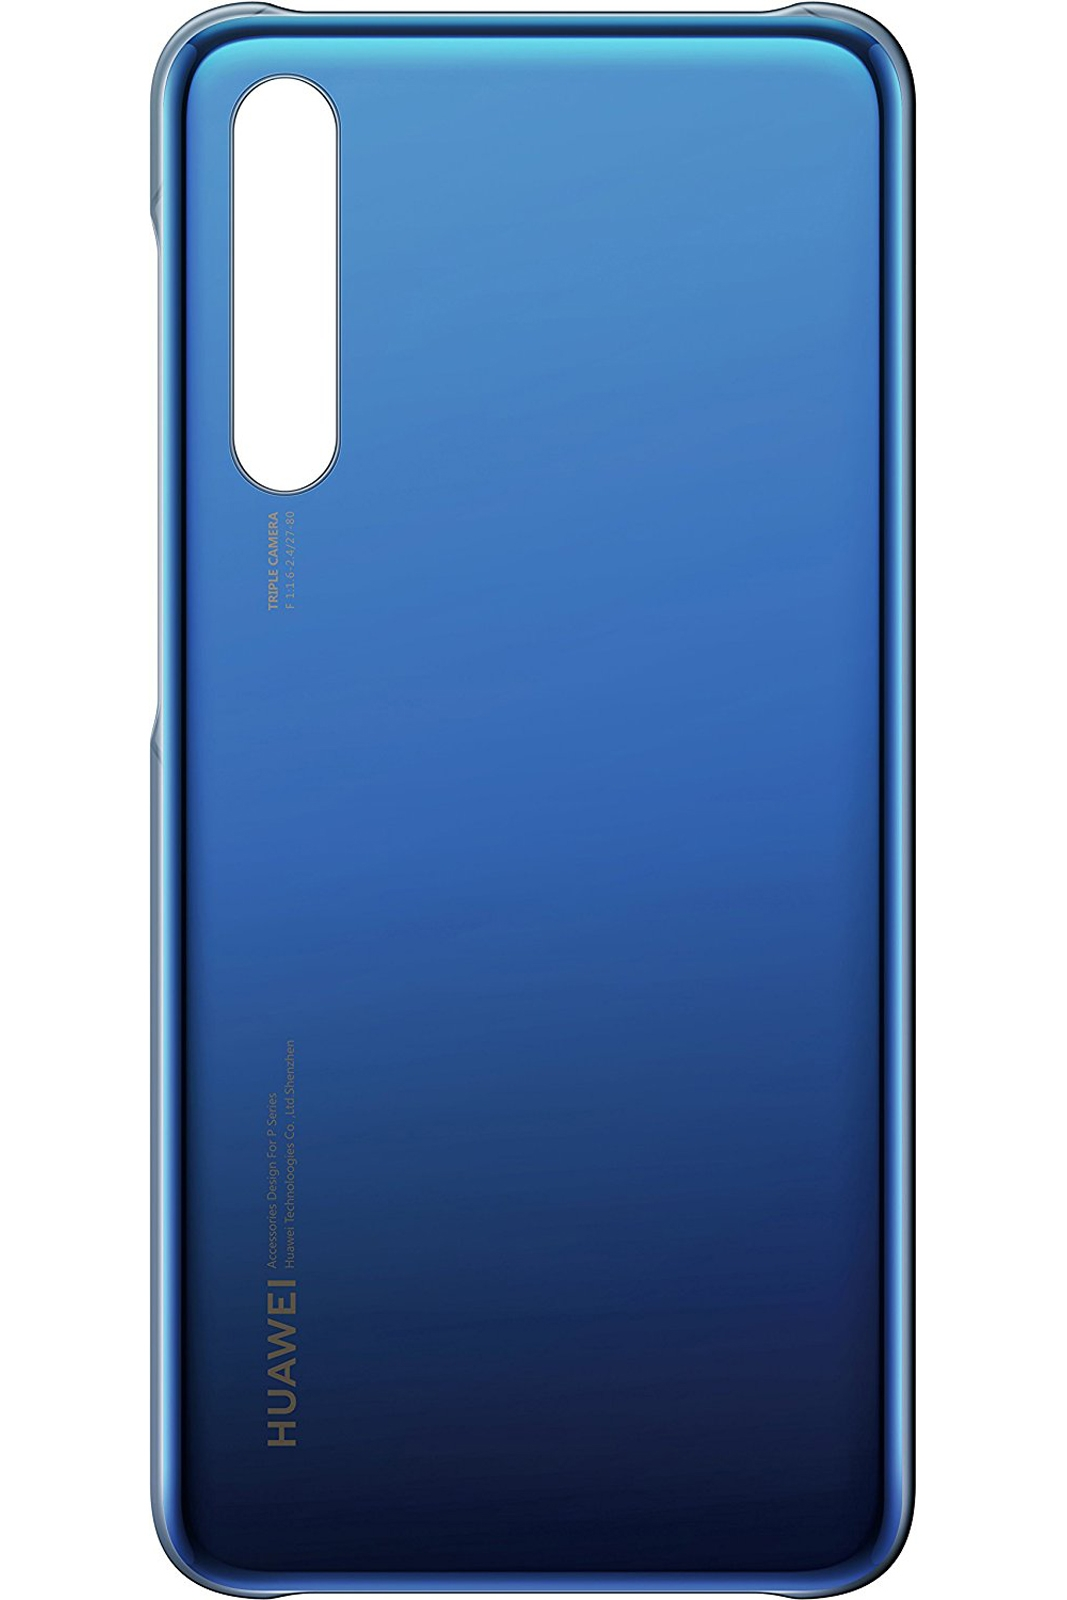 sports shoes a0eaa 57318 Details about Official Huawei P20 Pro Deep Blue Colour Case / Cover -  51992374